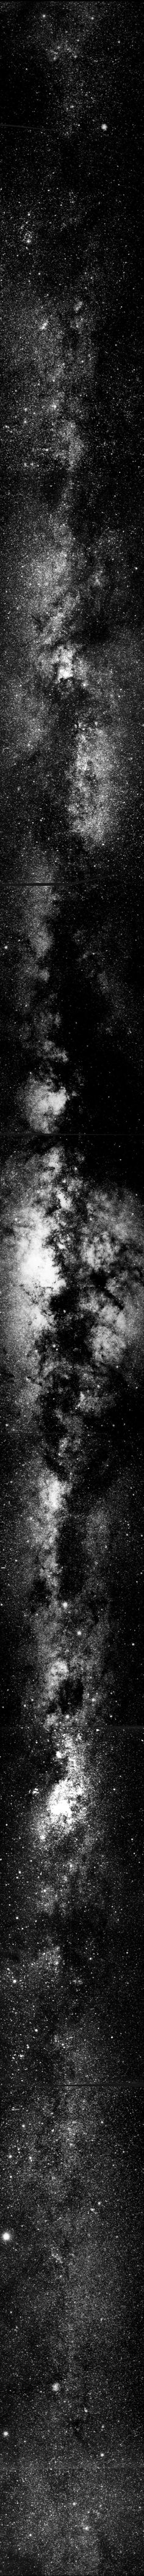 ♥ The Milky Way Galaxy - every dot is a Sun. via the Two Micron All Sky Survey using, in part, the Very Large Telescope.::  @Sha Hwang .. In the Atacama Desert in Chile.